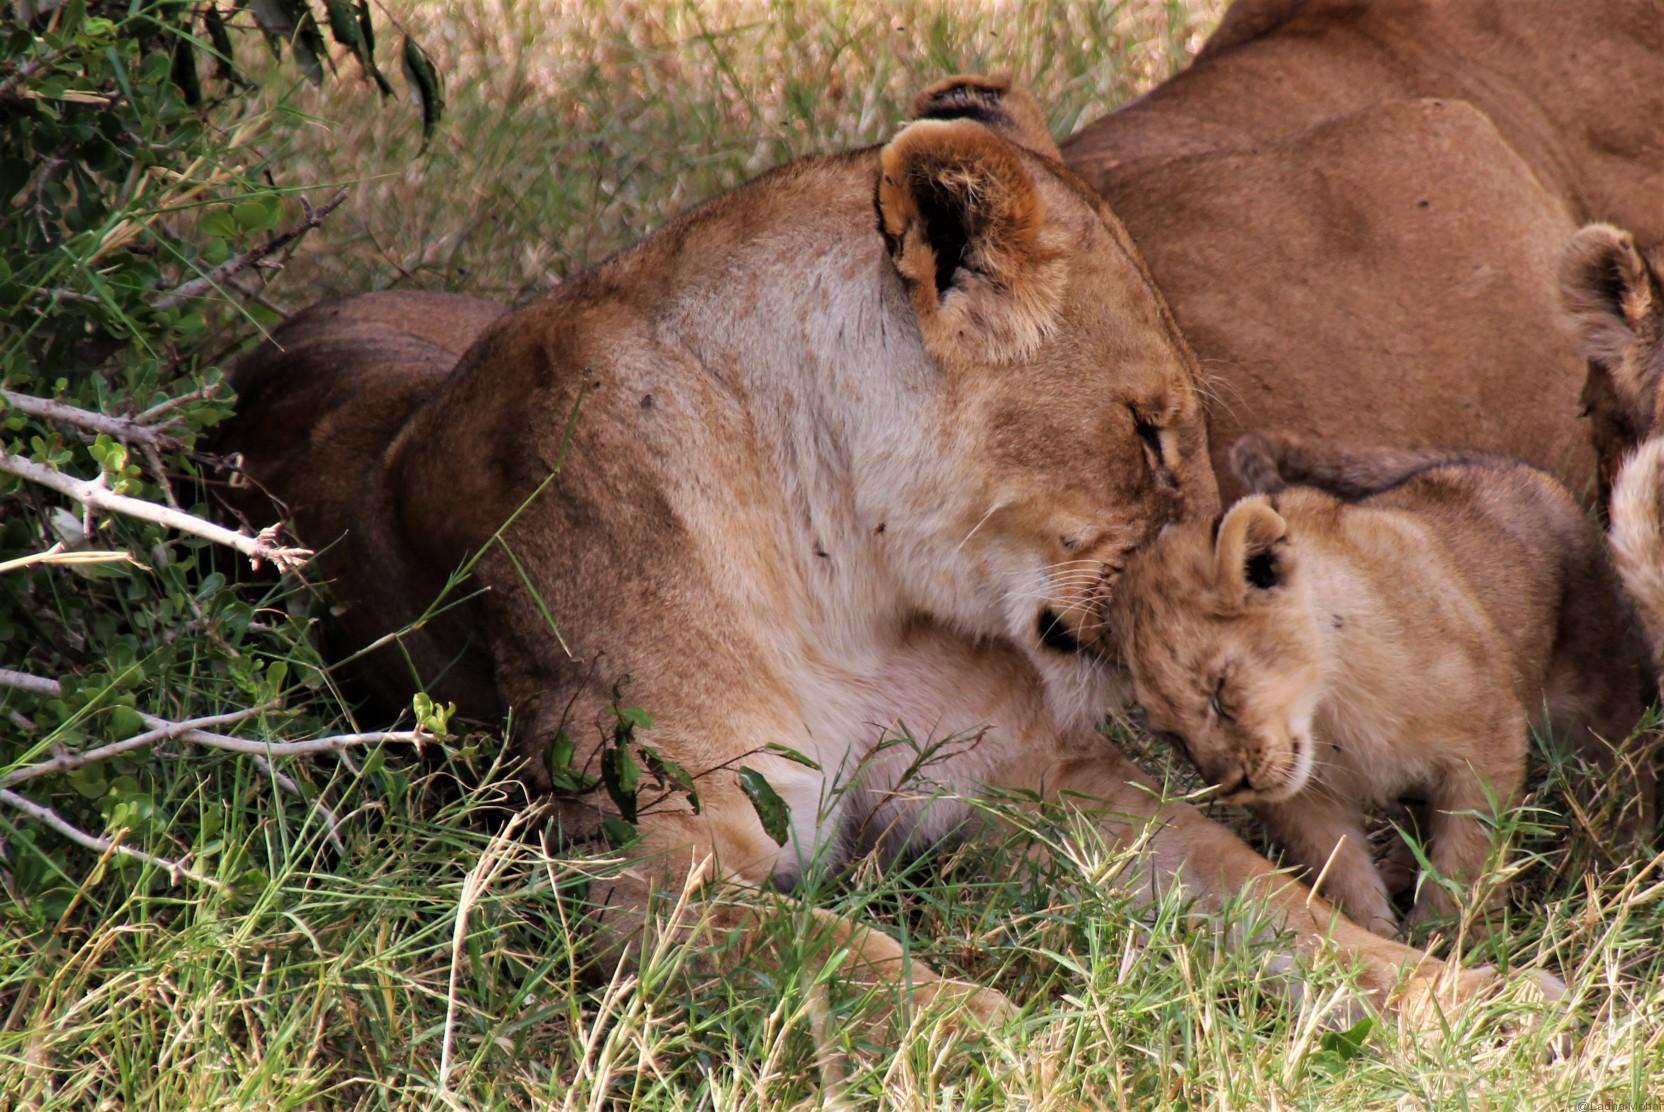 Lions and Cubs bonding time